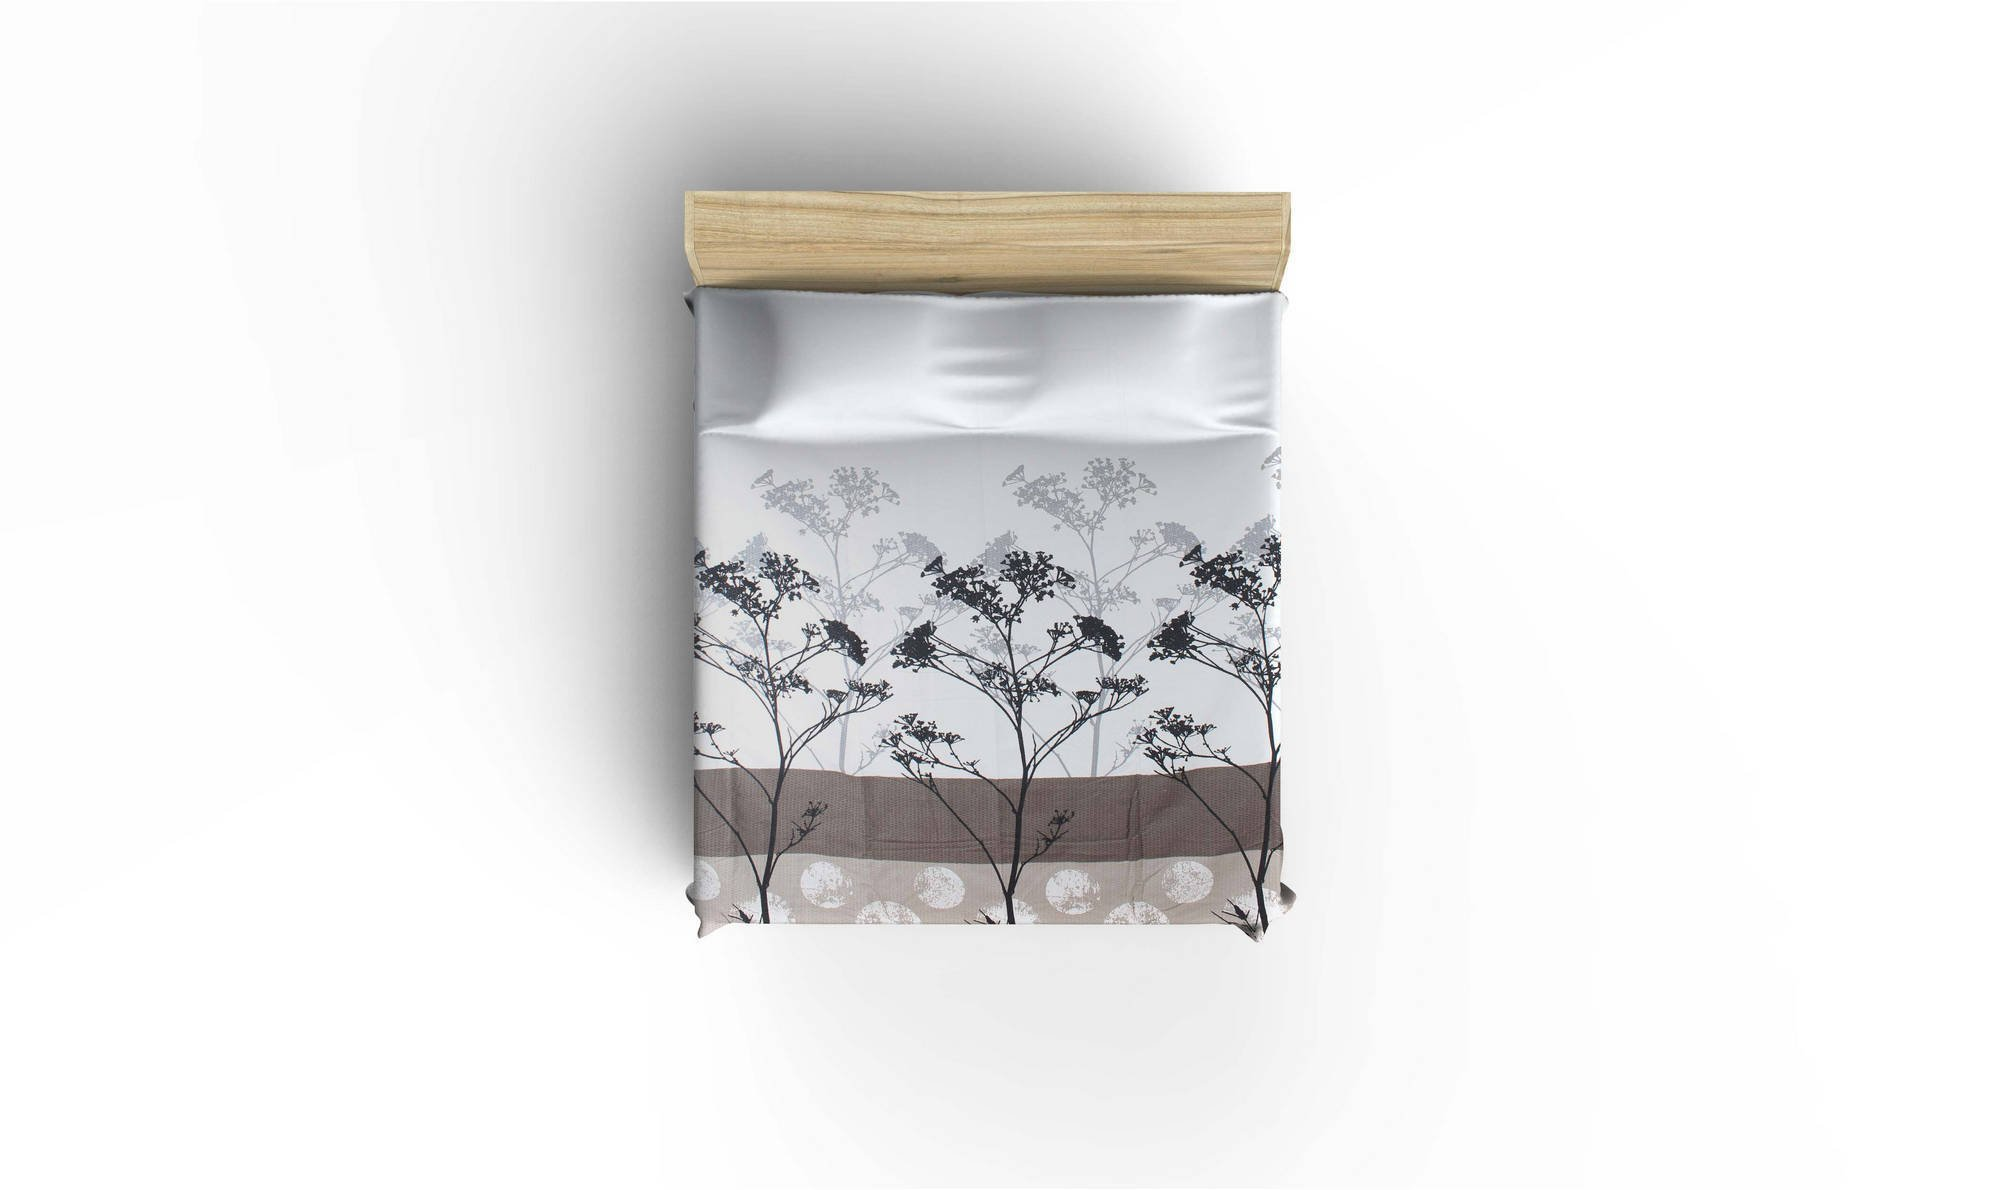 LaModaHome Luxury Soft Colored Twin and Single Bedroom Bedding 100% Cotton Single Coverlet (Pique) Thin Coverlet Summer/Blue Background Owl Bird Flower Daisy Plant Nature Animal by LaModaHome